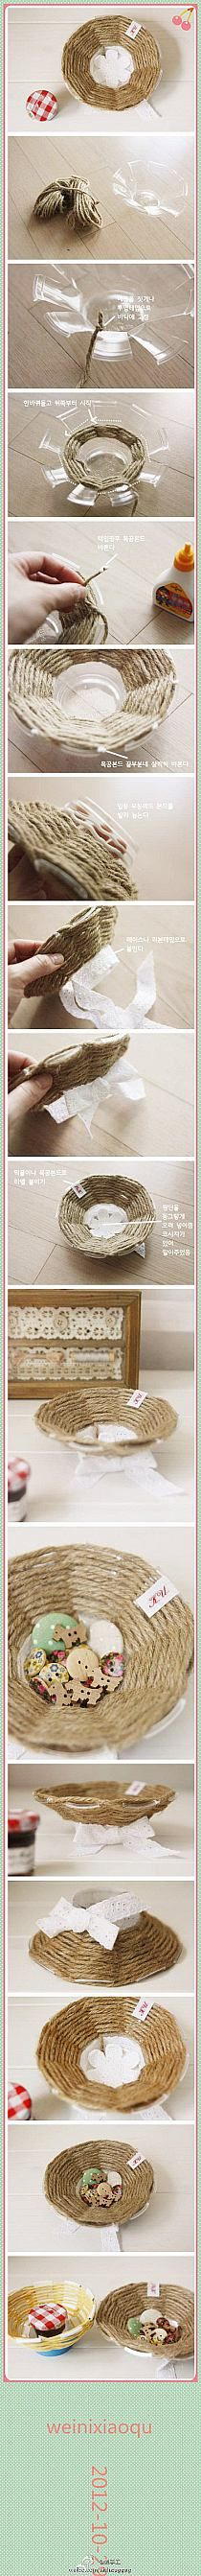 Weaving on a plastic cup add long twine to hang by and bird food Fun Crafts, Diy And Crafts, Crafts For Kids, Arts And Crafts, Diy Projects To Try, Craft Projects, Diy Love, Plastic Bottle Crafts, Plastic Bottles